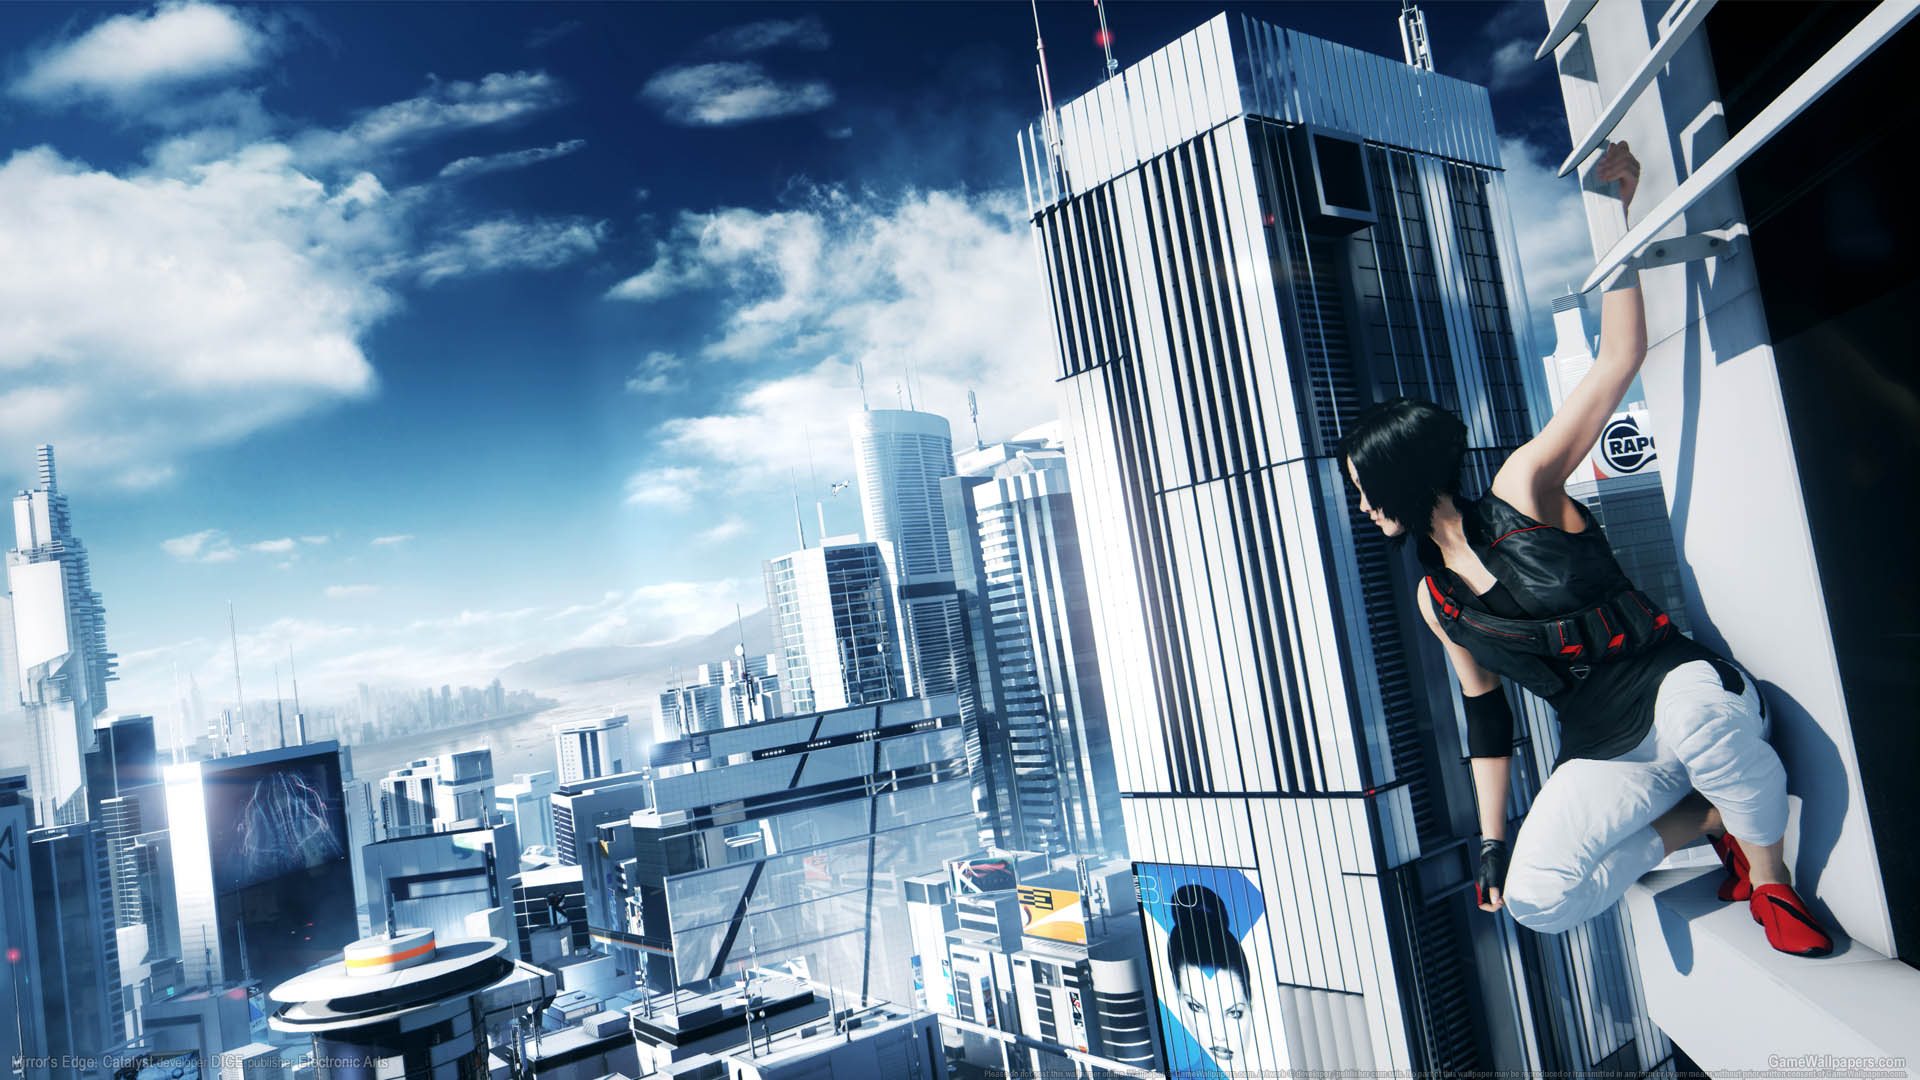 Mirrors Edge Catalyst Computer Wallpapers Desktop Backgrounds 1920x1080